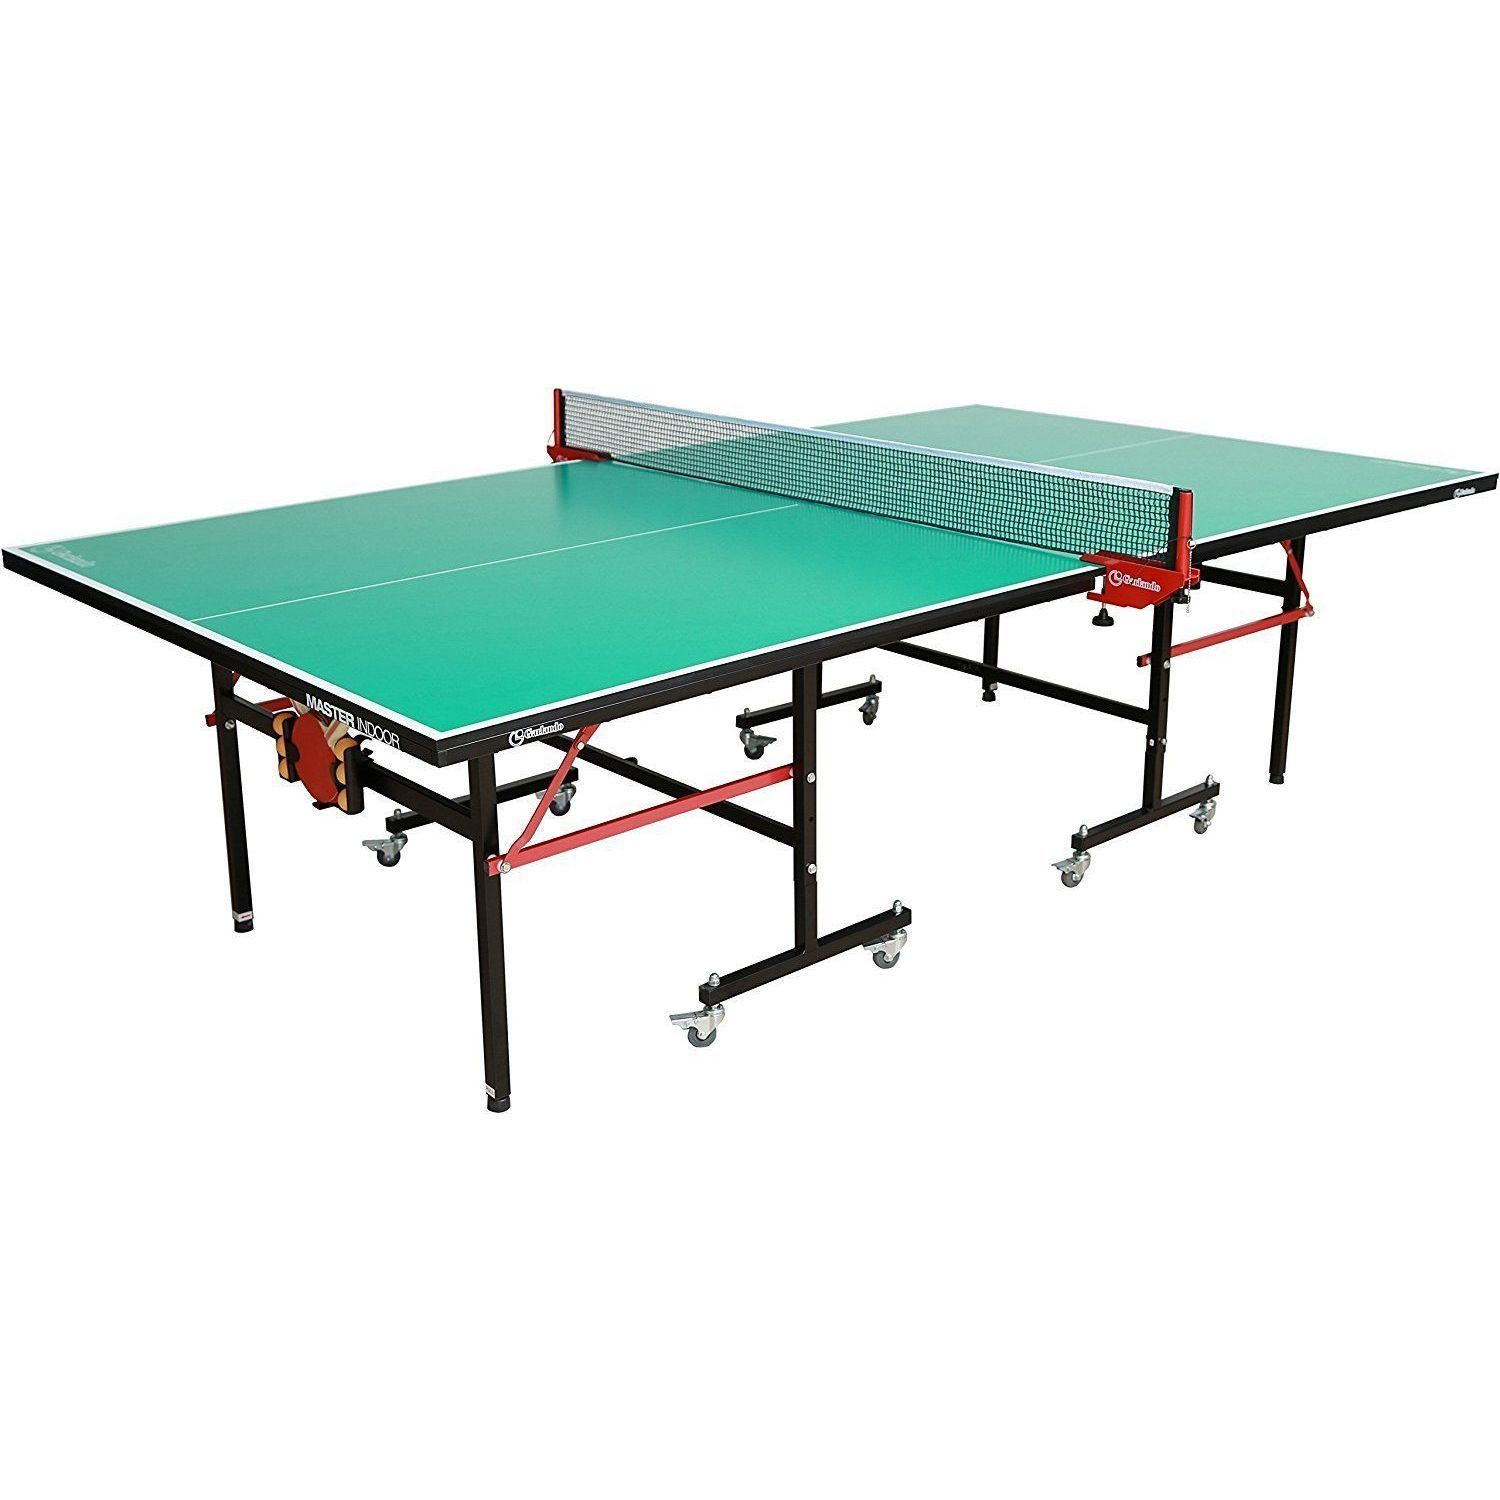 Attractive Garlando Master Indoor Full Size IMP 21 360 Table Tennis Ping Pong Table